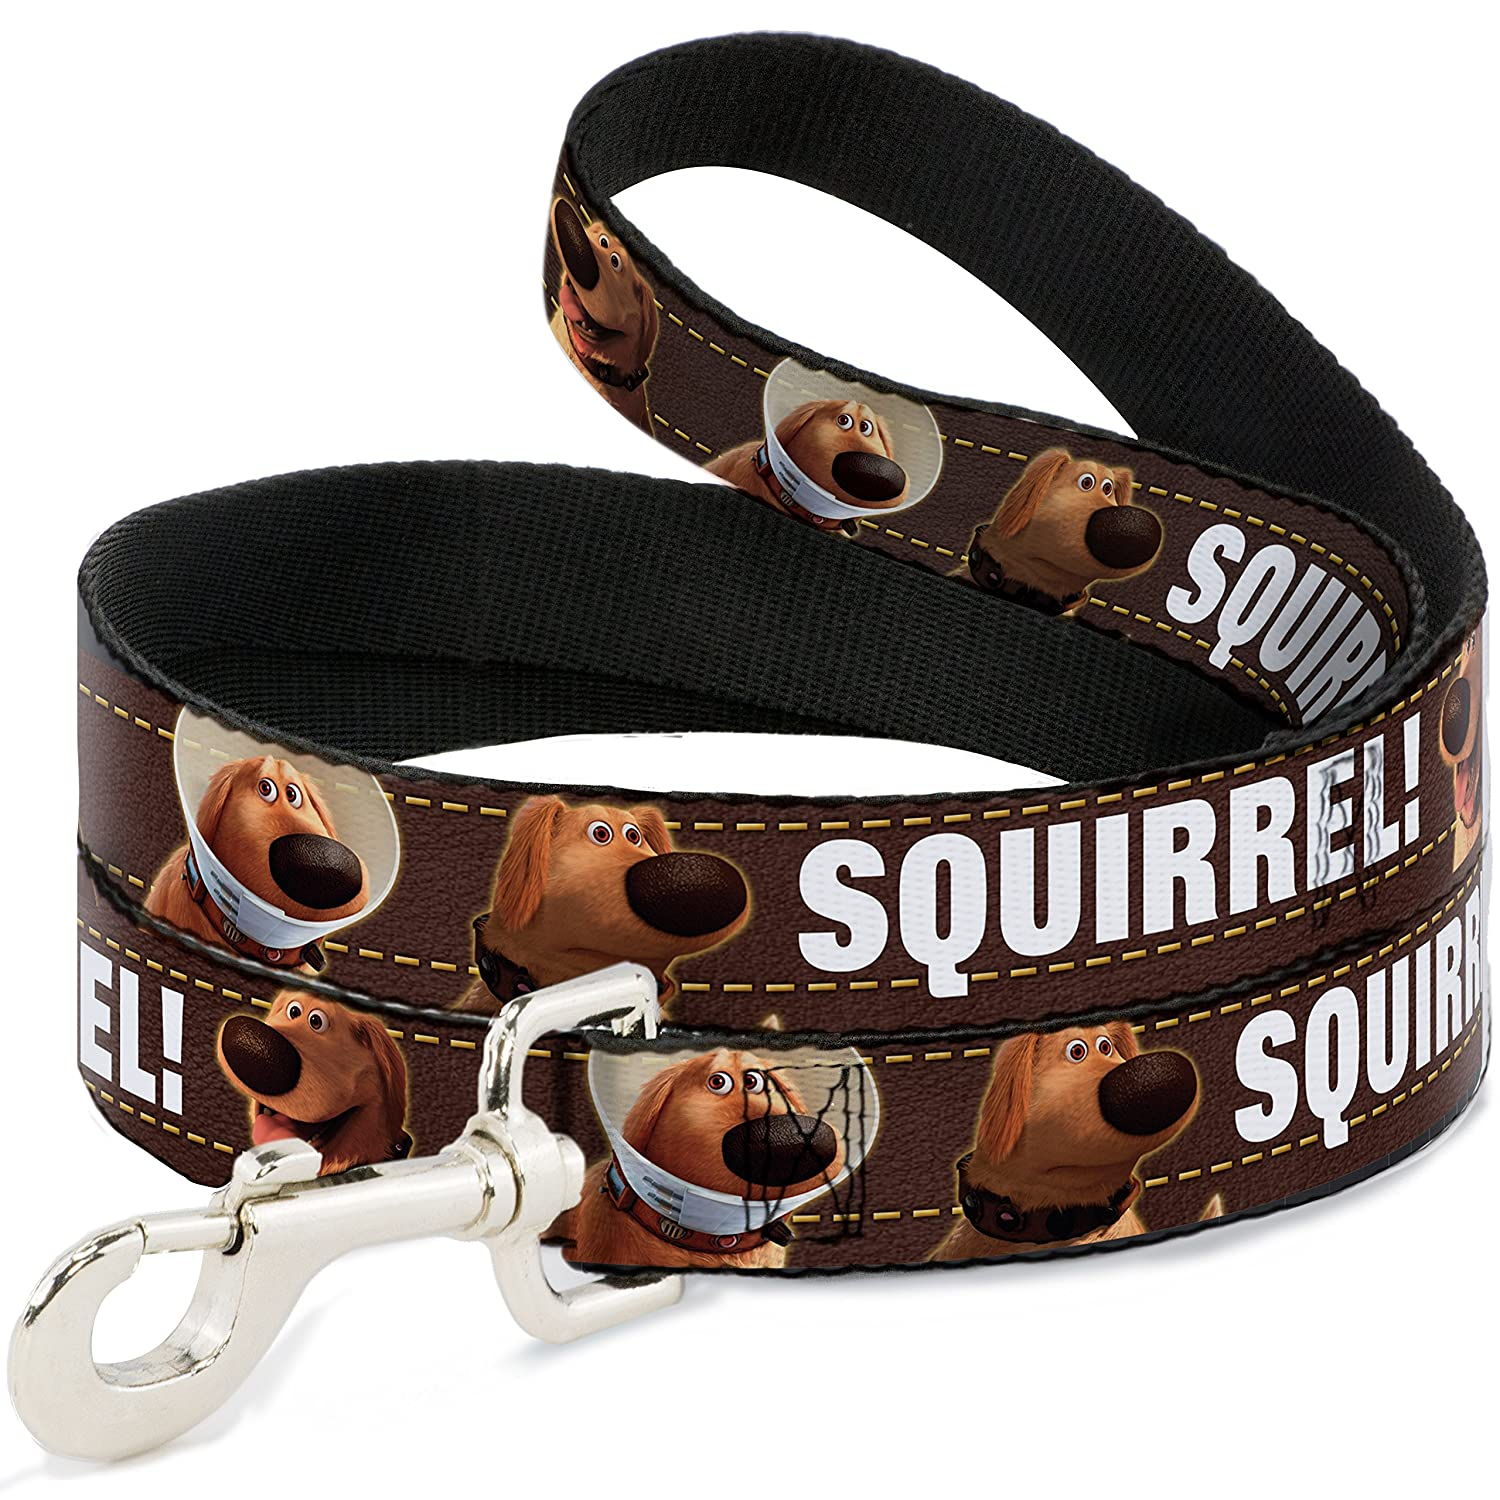 Buckle-Down Pet Leash Dug 3-Poses Squirrel  Brown Yellow White 6 Feet Long 1  Wide